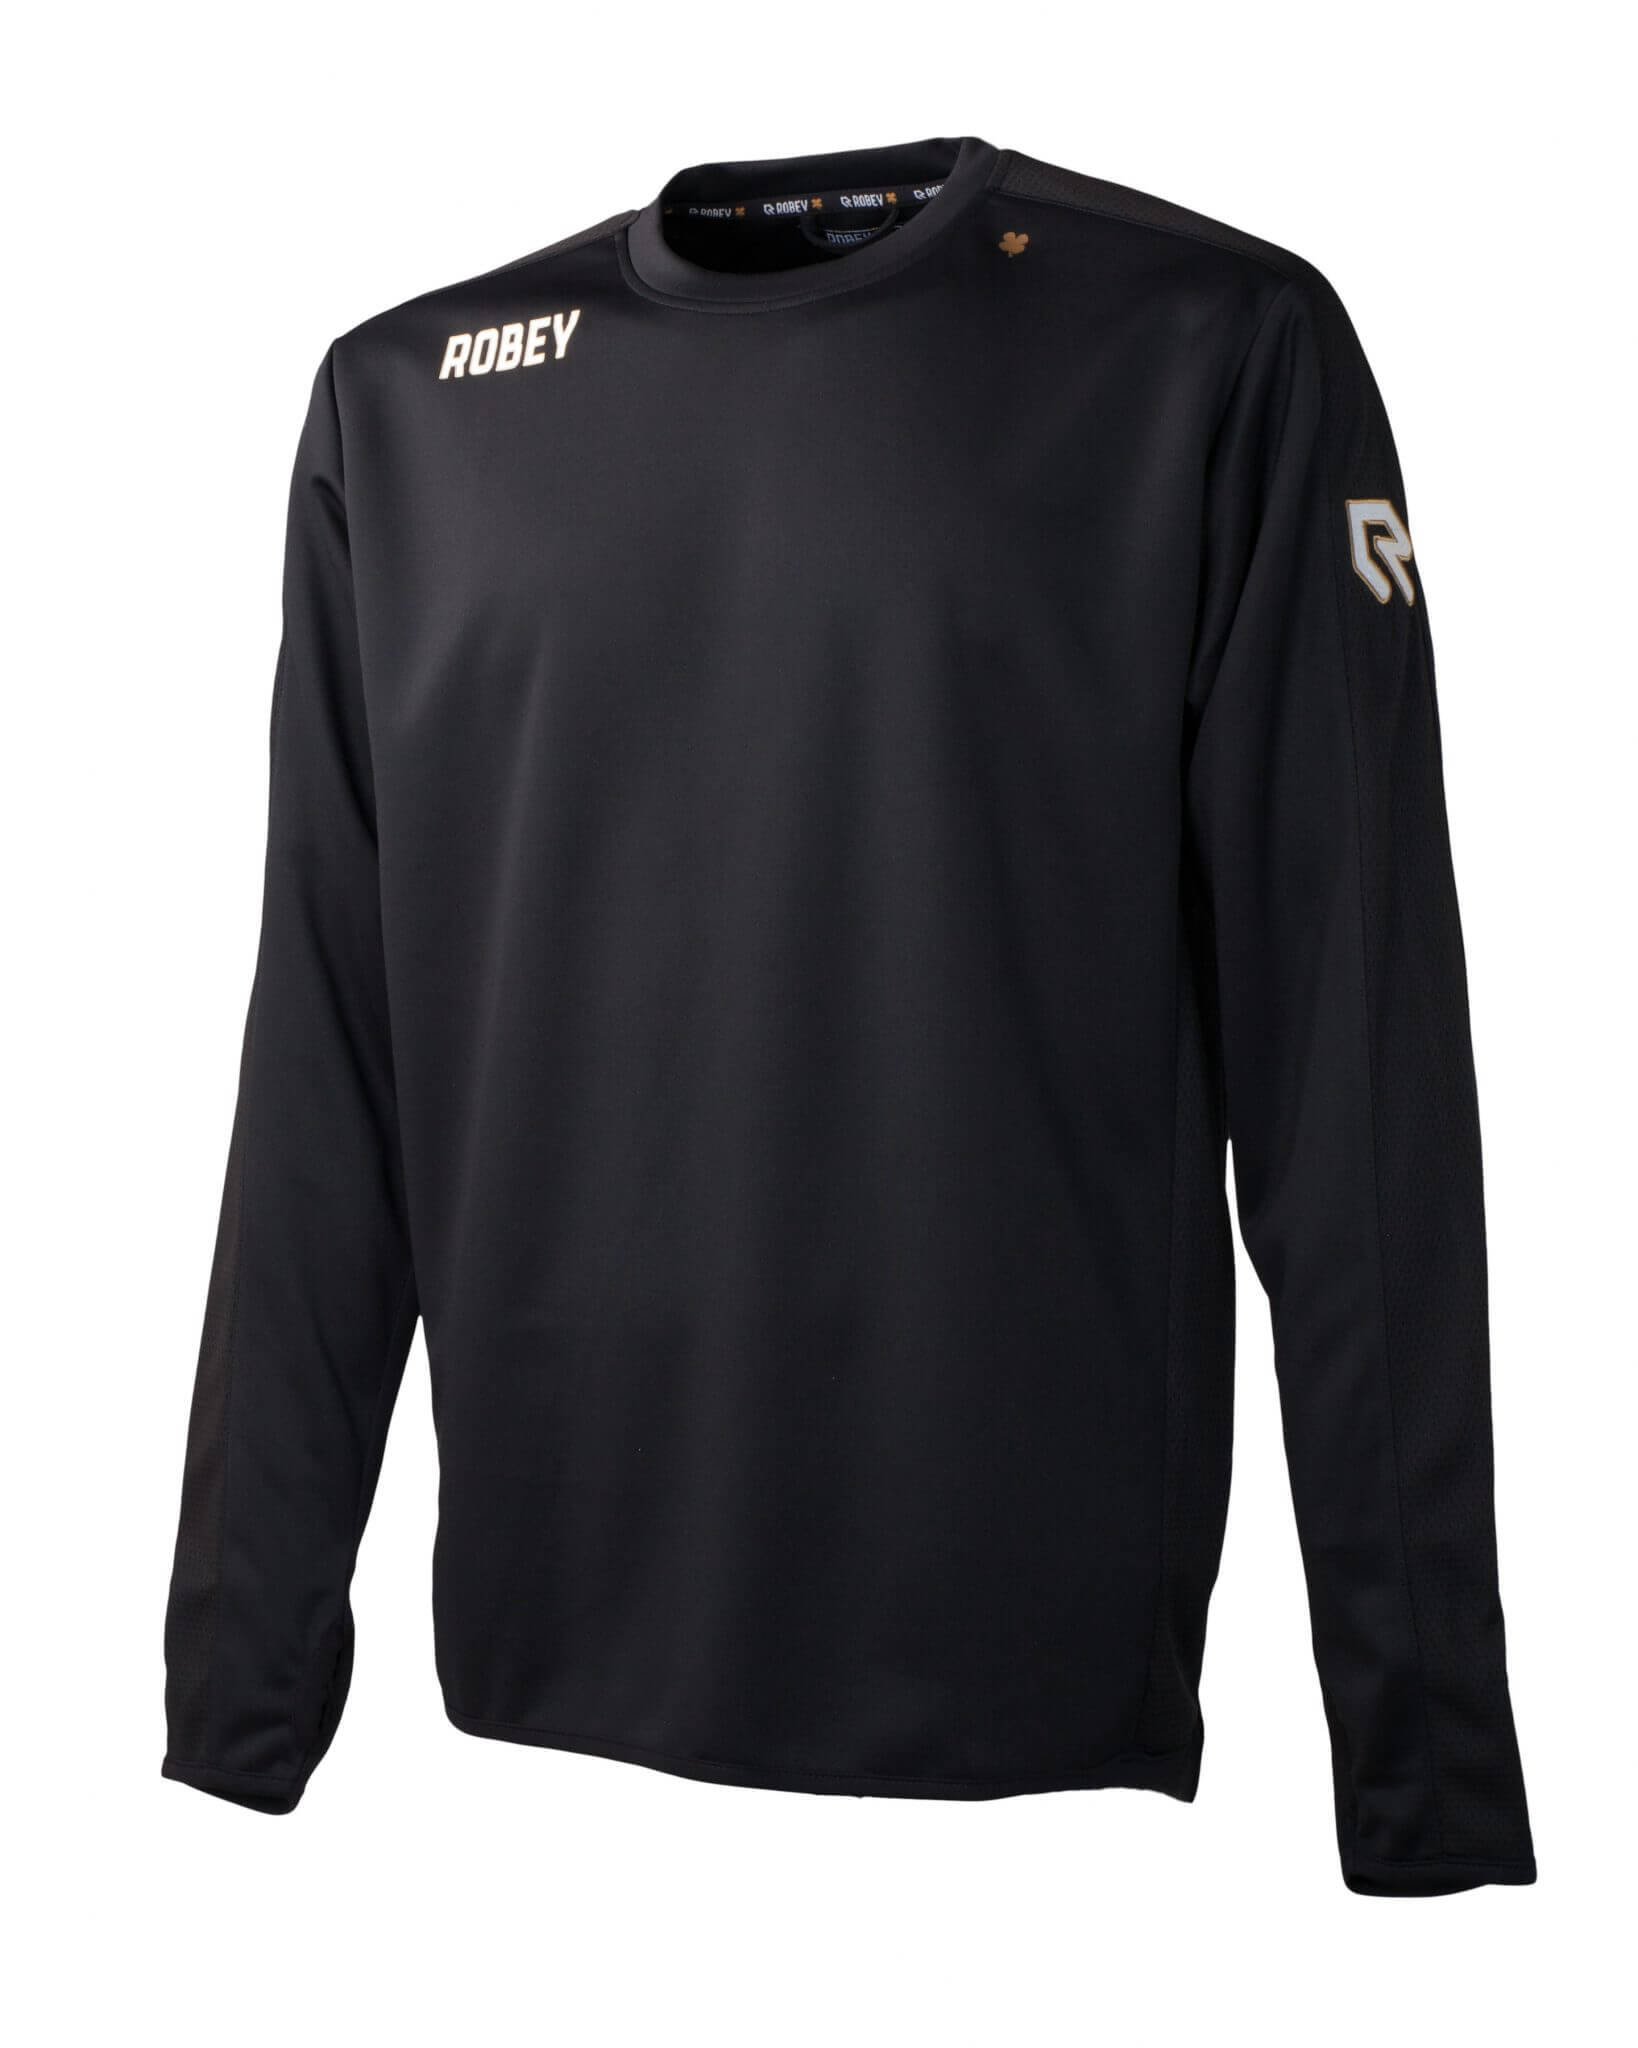 Robey Performance Sweater